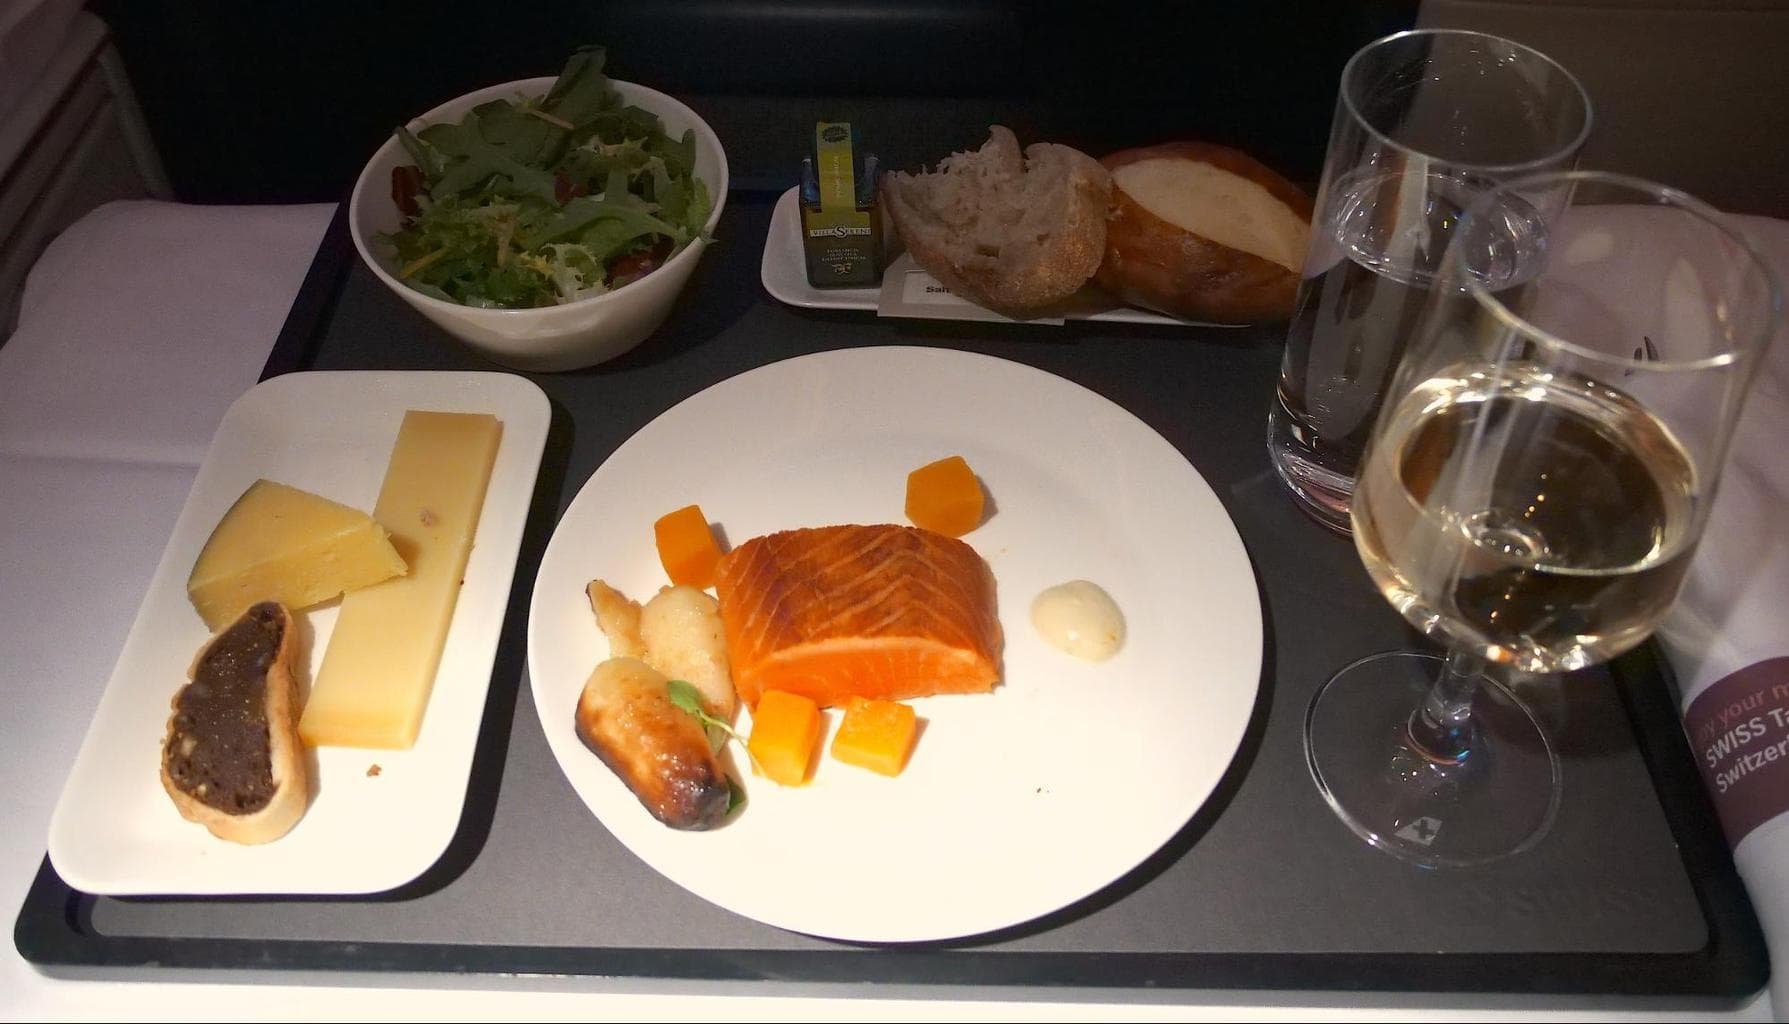 Meals on Swiss Business Class served in a tray